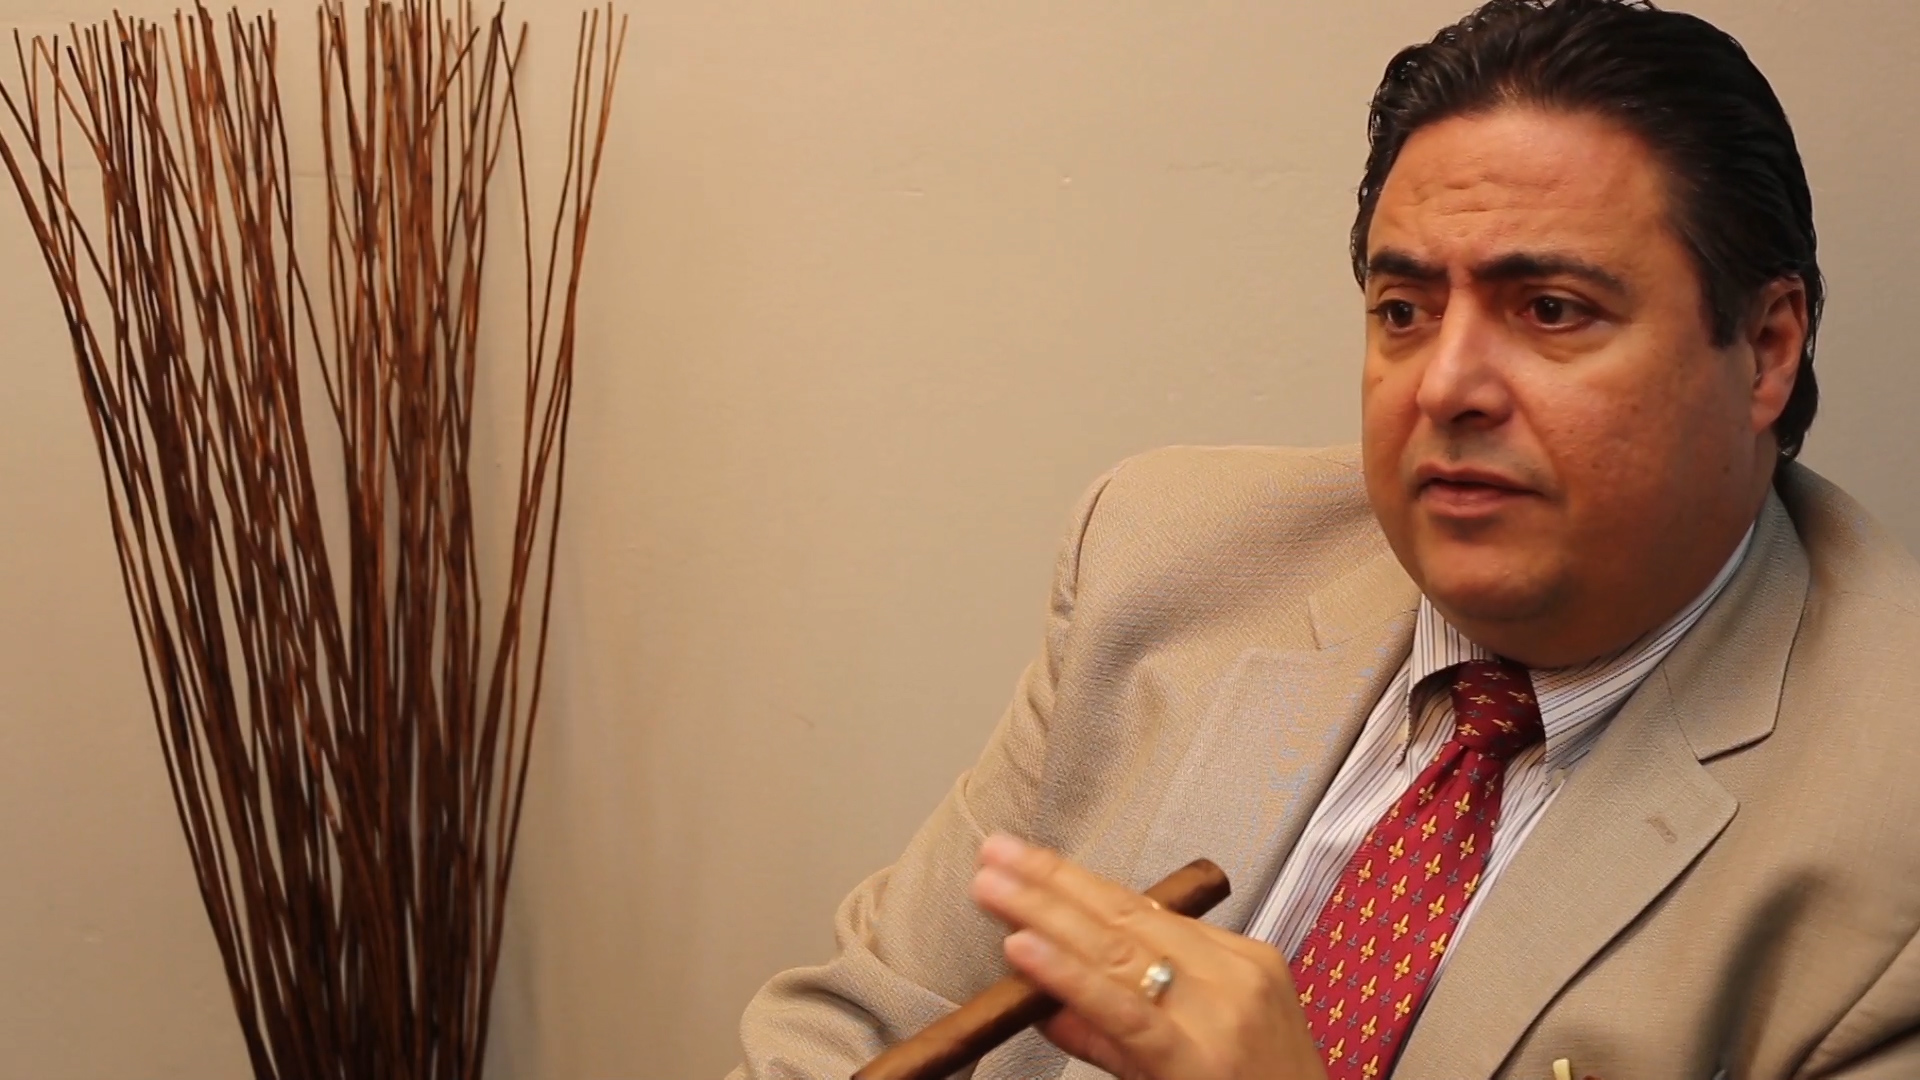 Video: Rafael Nodal on why cigars make travel, relationships, and politics better